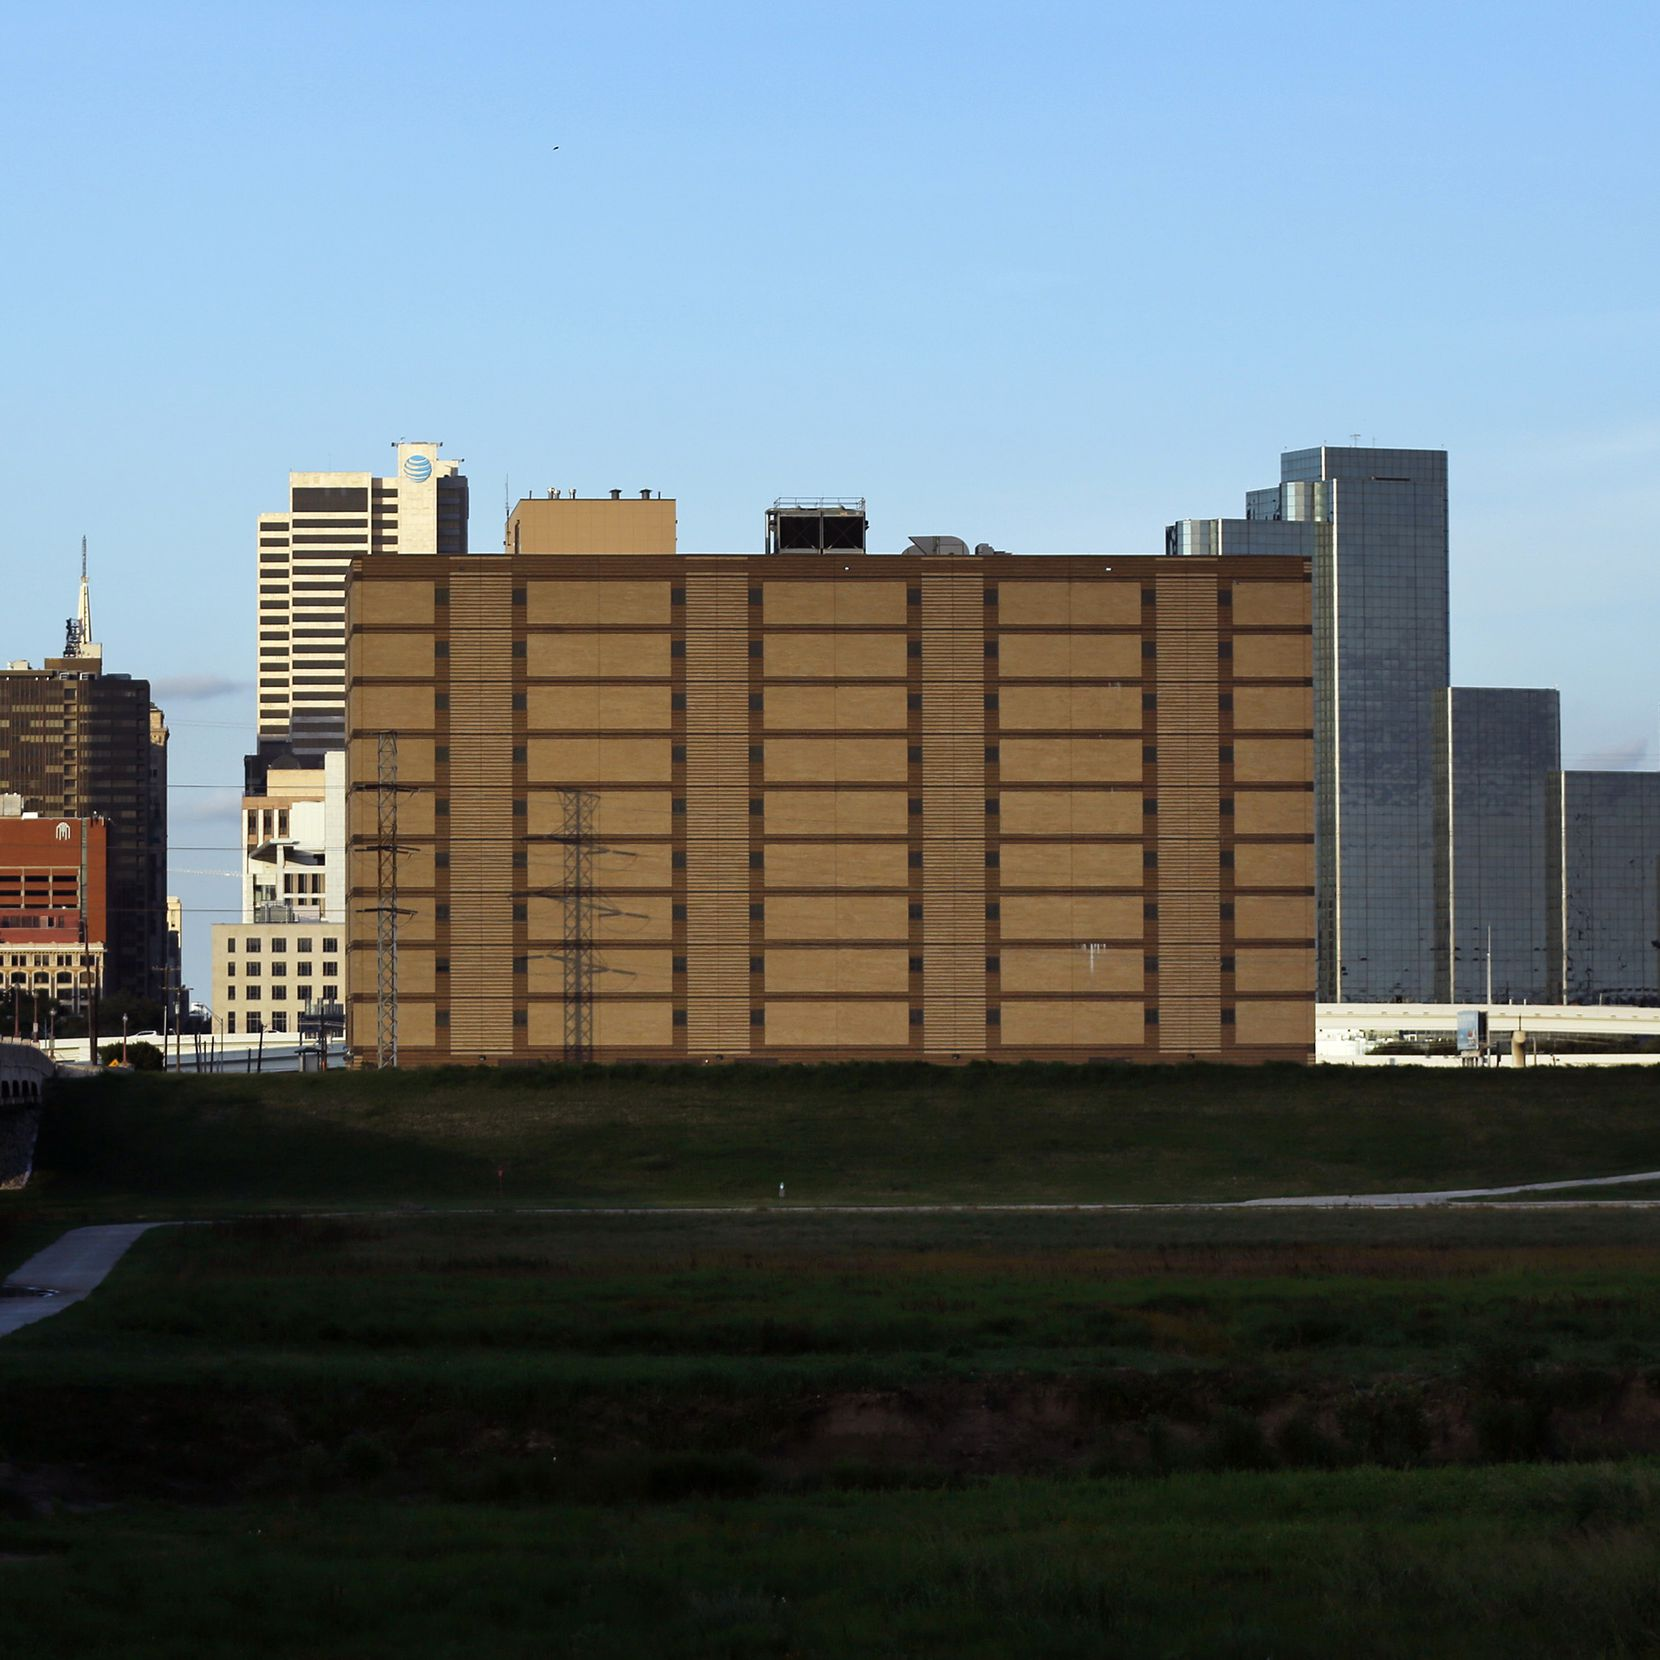 The former Dawson State Jail (center) is blessedly headed for a remaking as an entry point to the forthcoming Trinity park.